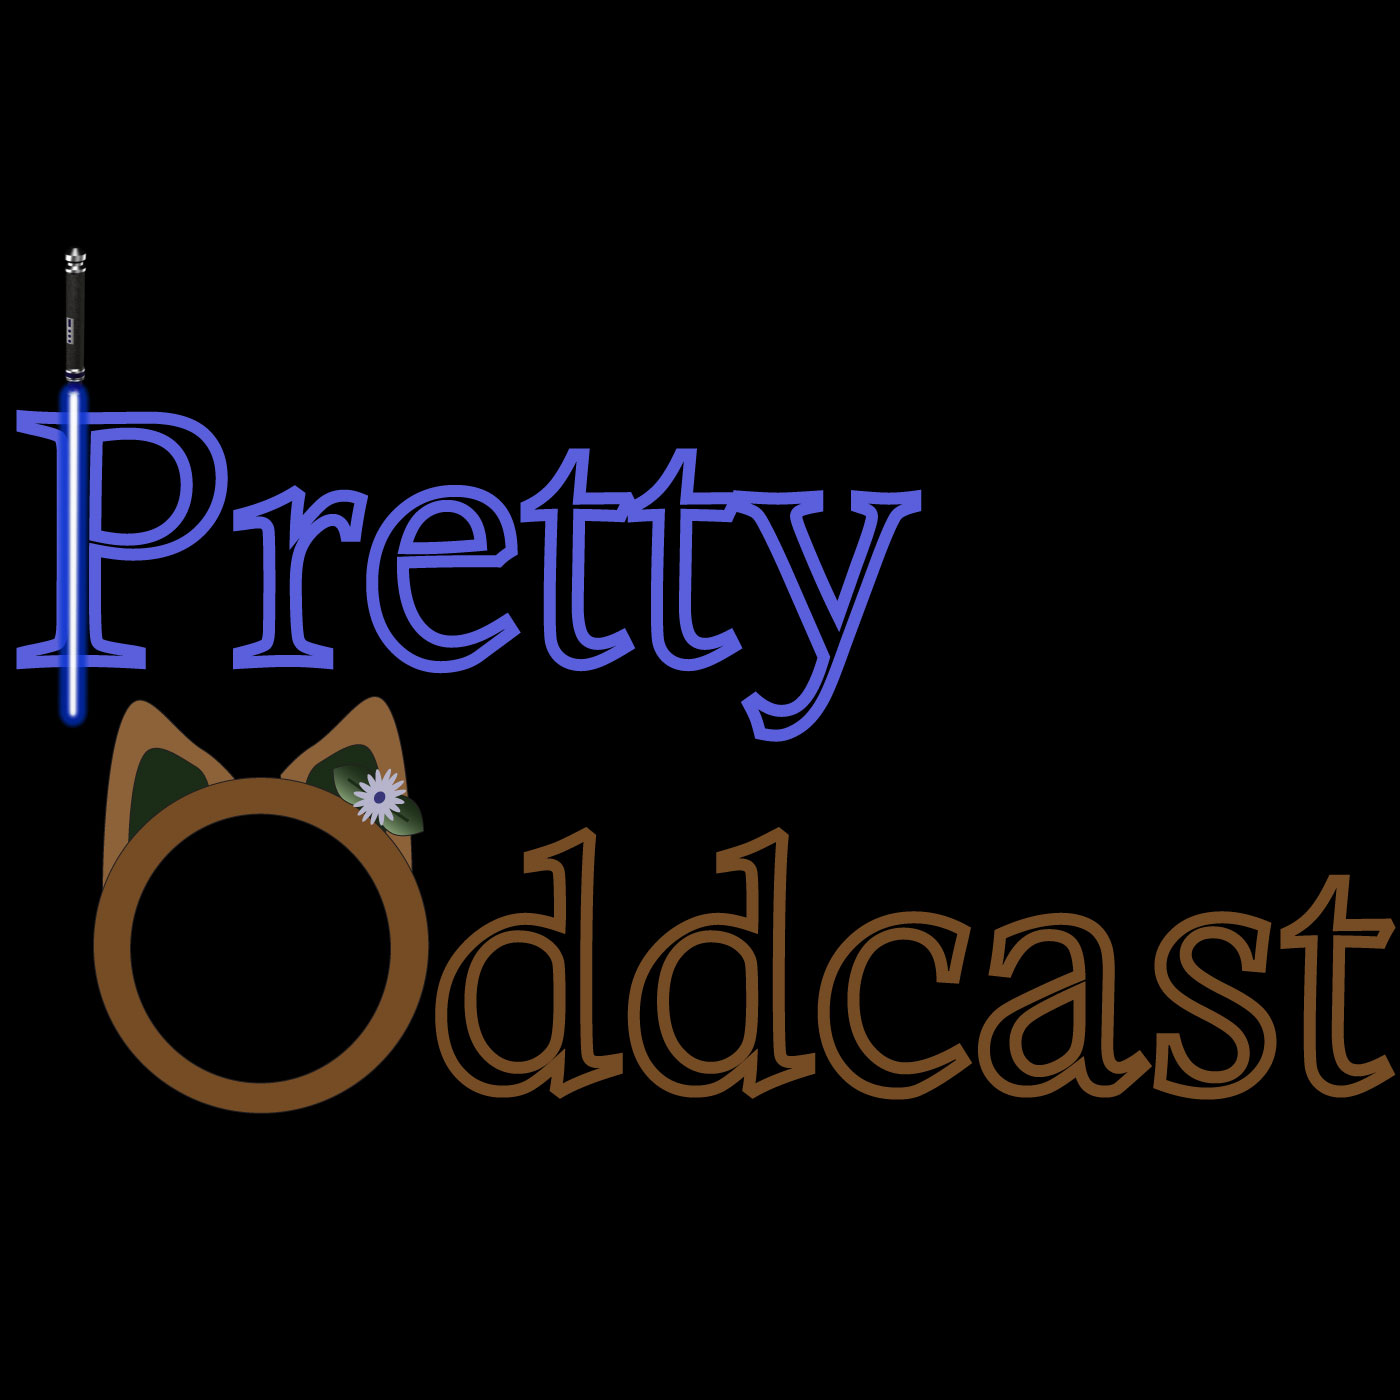 Pretty Oddcast | Listen via Stitcher for Podcasts